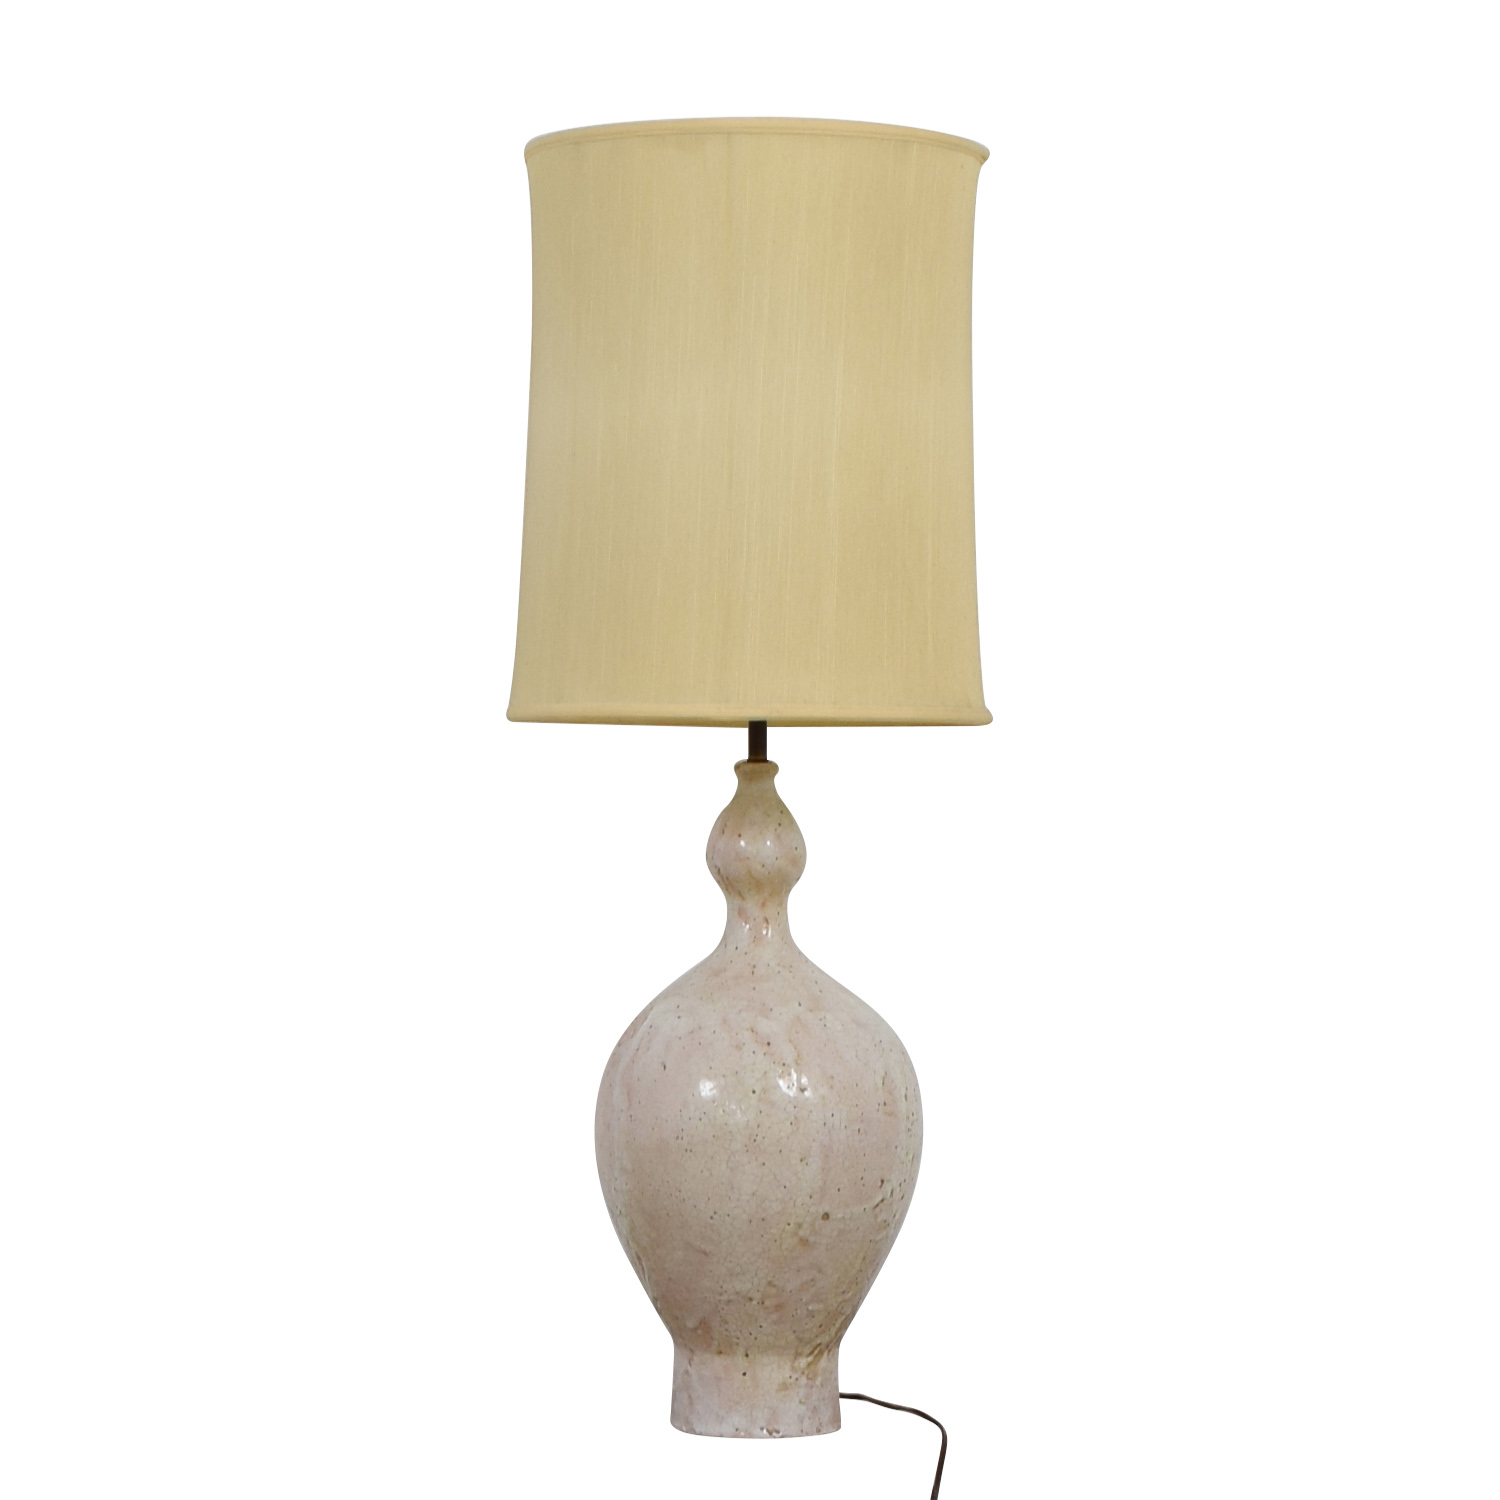 buy Vintage White Ceramic Lamp online